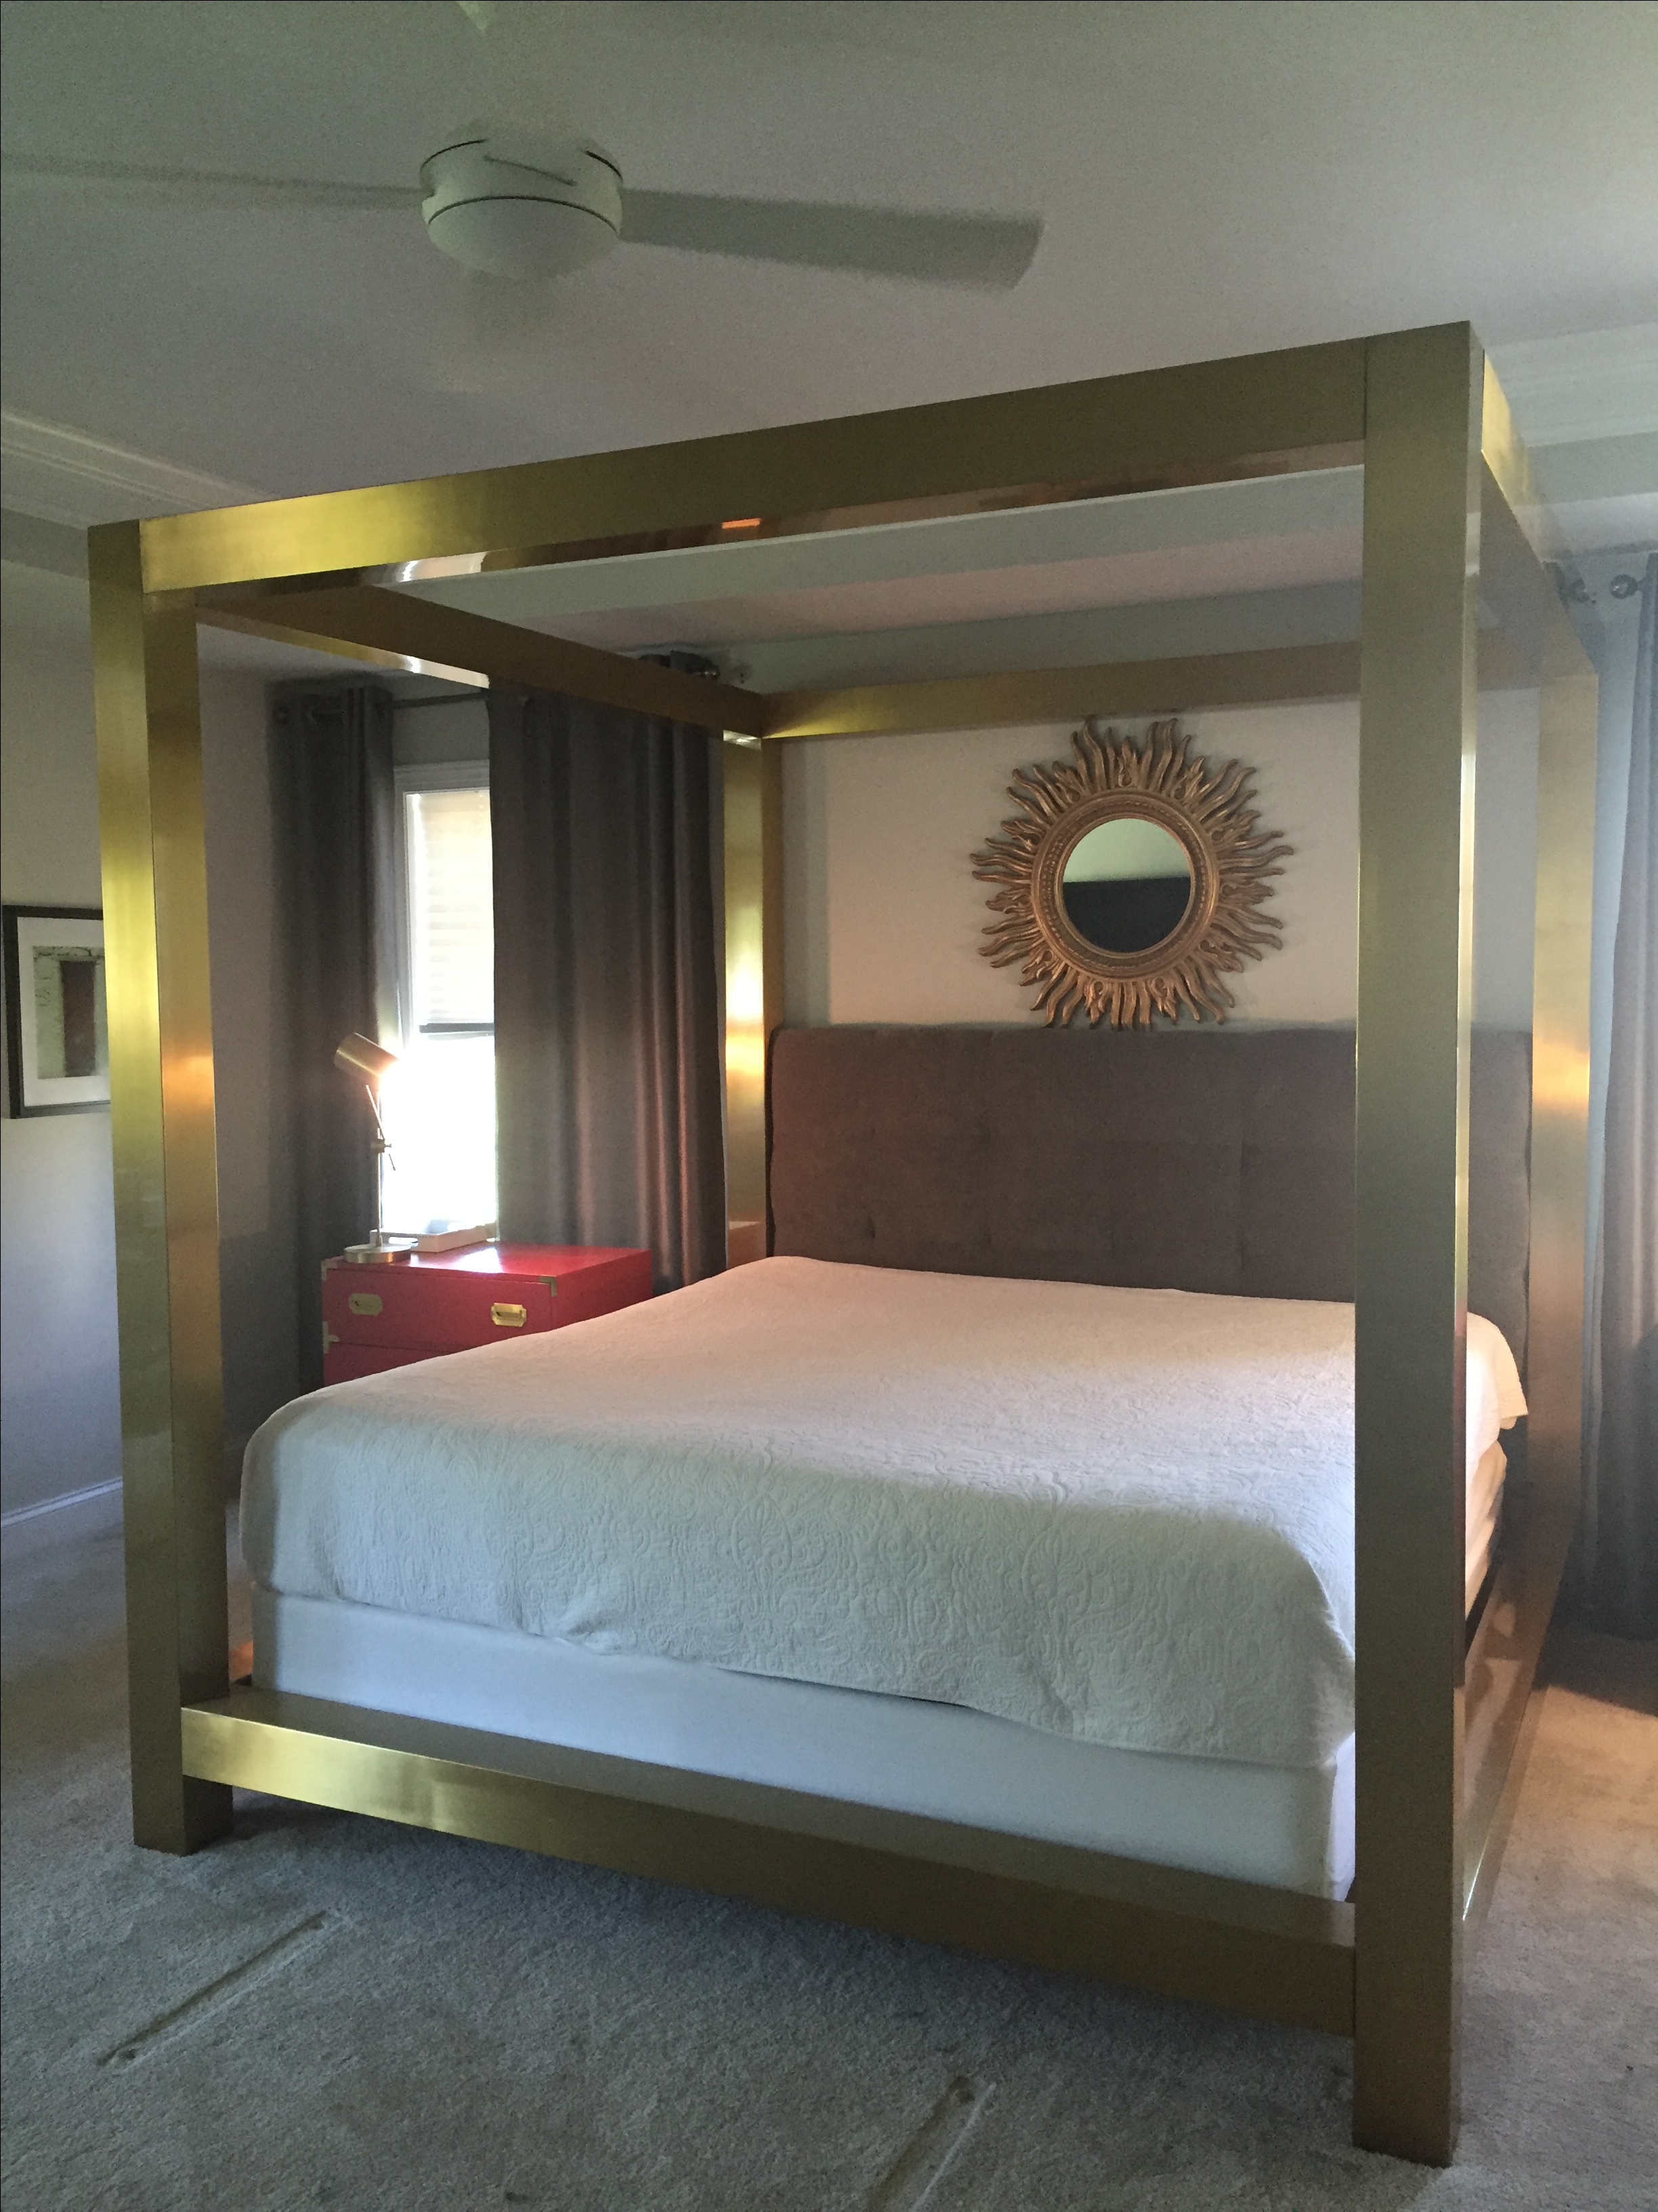 bernhardt kensington metal canopy bed image 2 of 6